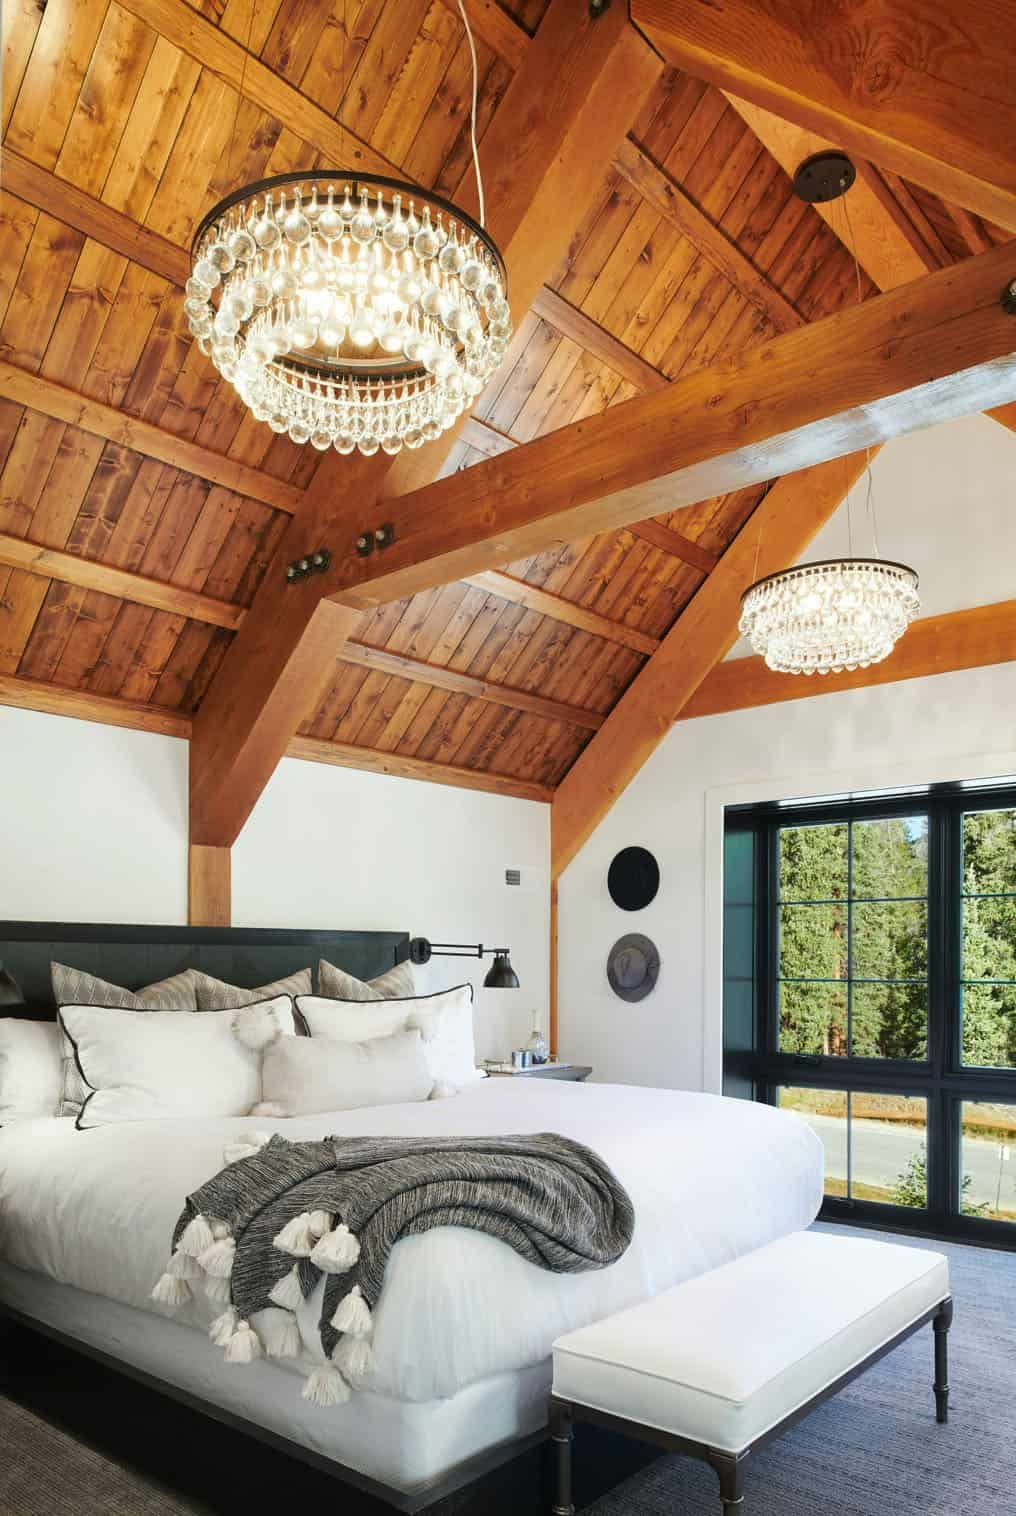 Elegant crystal chandeliers hang from the ceiling and adorn the bedrooms